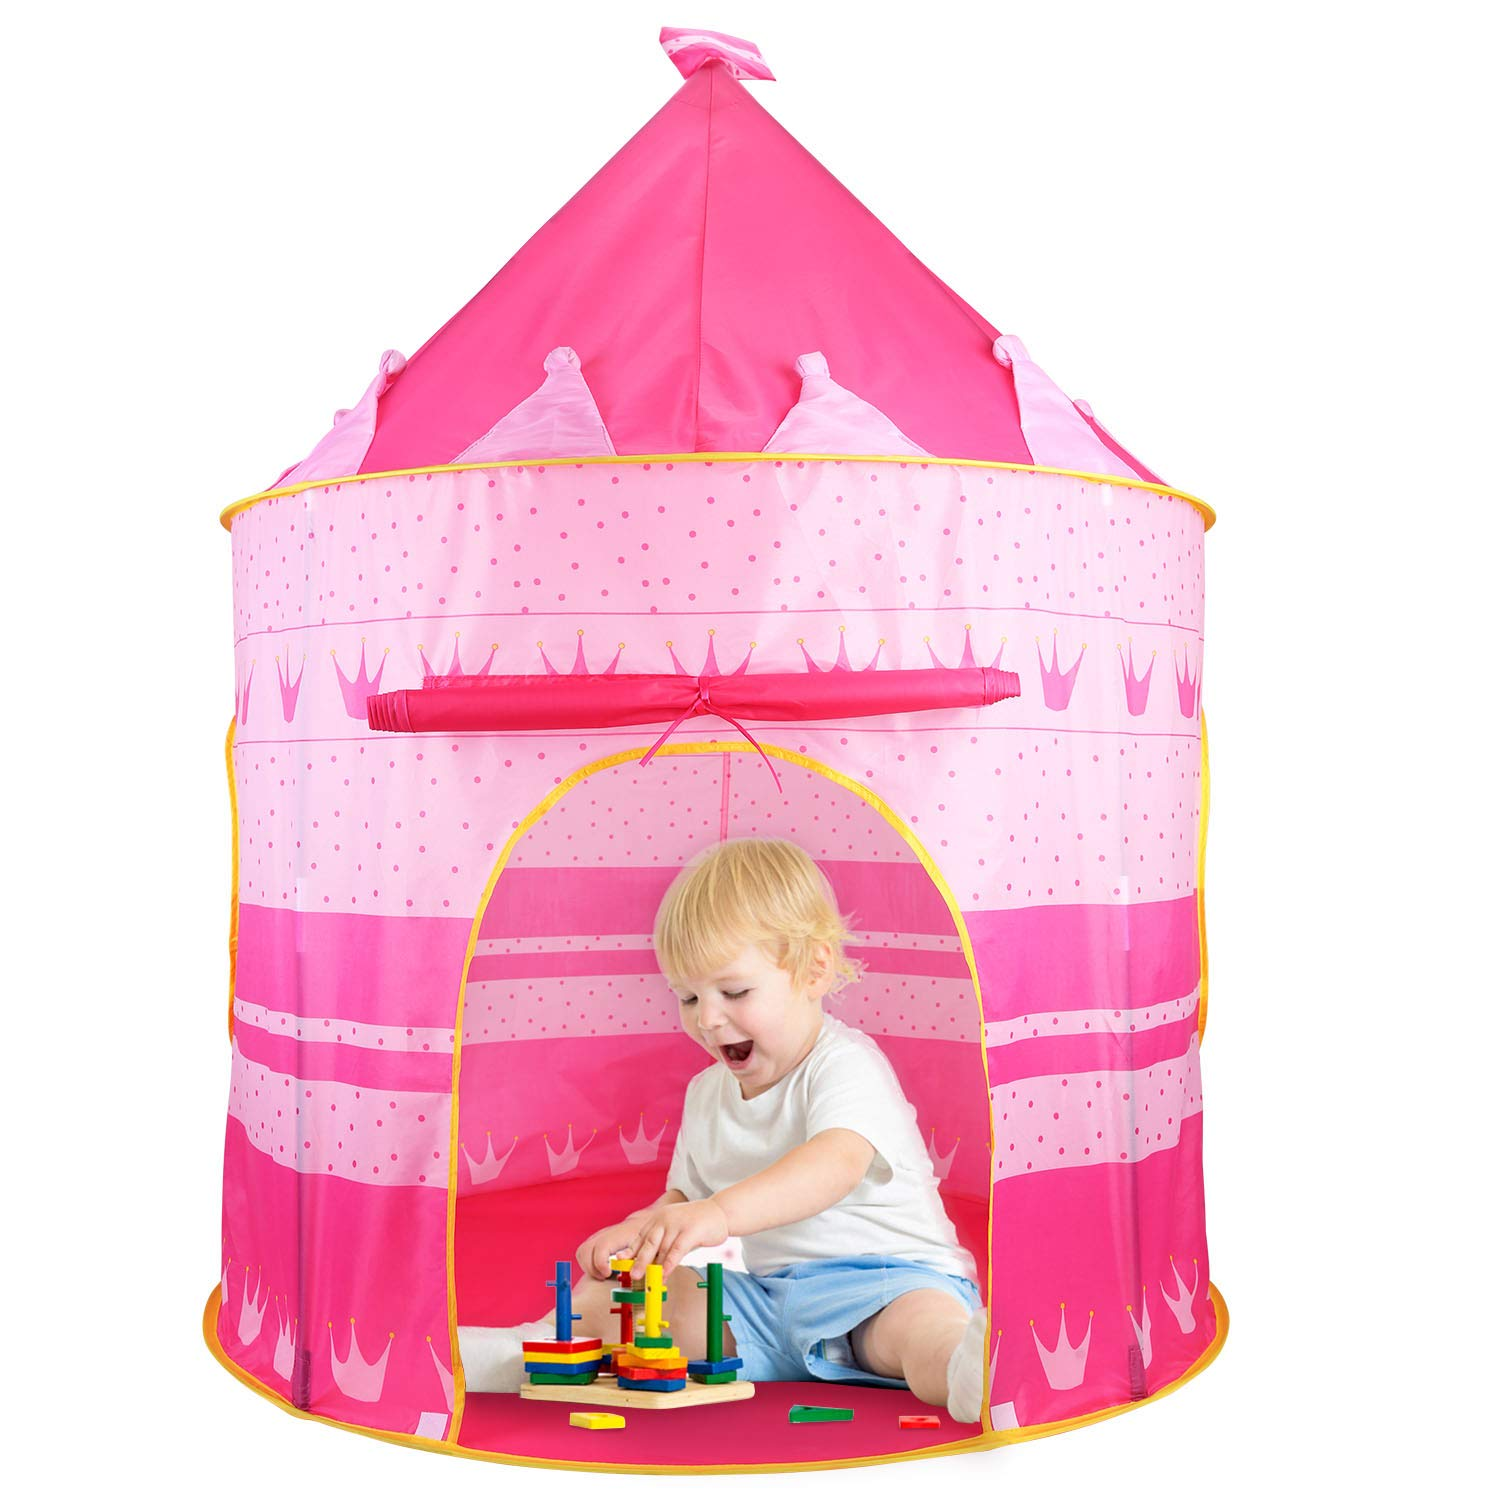 Castle Tent Play Tent Playhouse for Kids Indoor Outdoor Princess Castle Room Girls Toy Tents for Boys Kindergarten Games Gift for Children Portable Foldable ...  sc 1 st  Amazon.com & Amazon.com: Castle Tent Play Tent Playhouse for Kids Indoor Outdoor ...